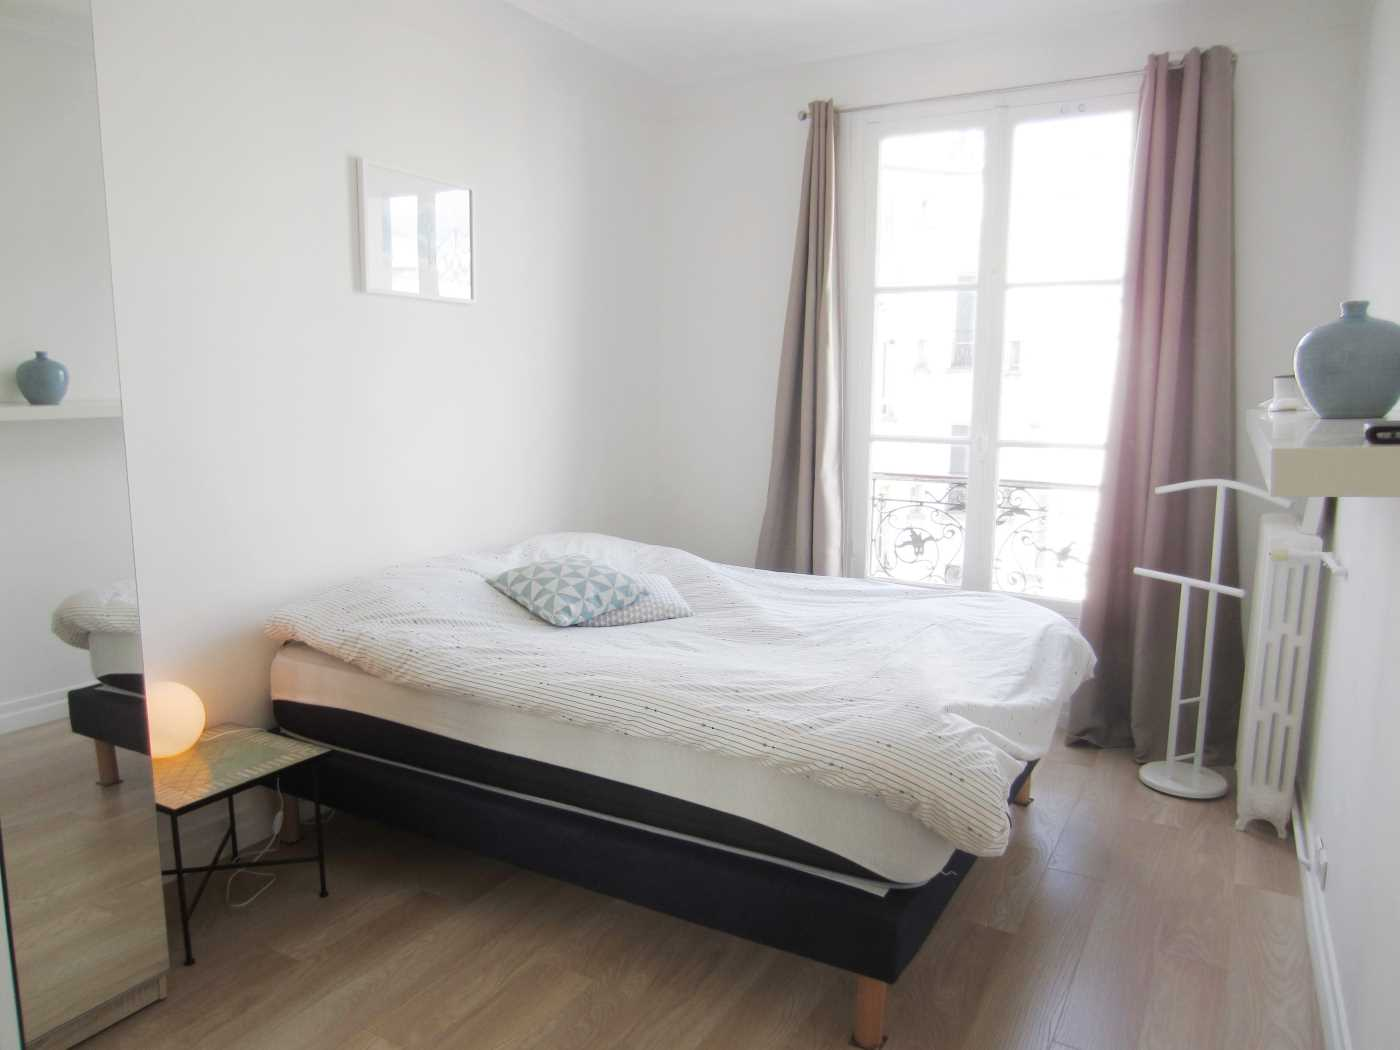 Location appartement meubl paris 15 cattalan johnson for Appartement meuble location paris